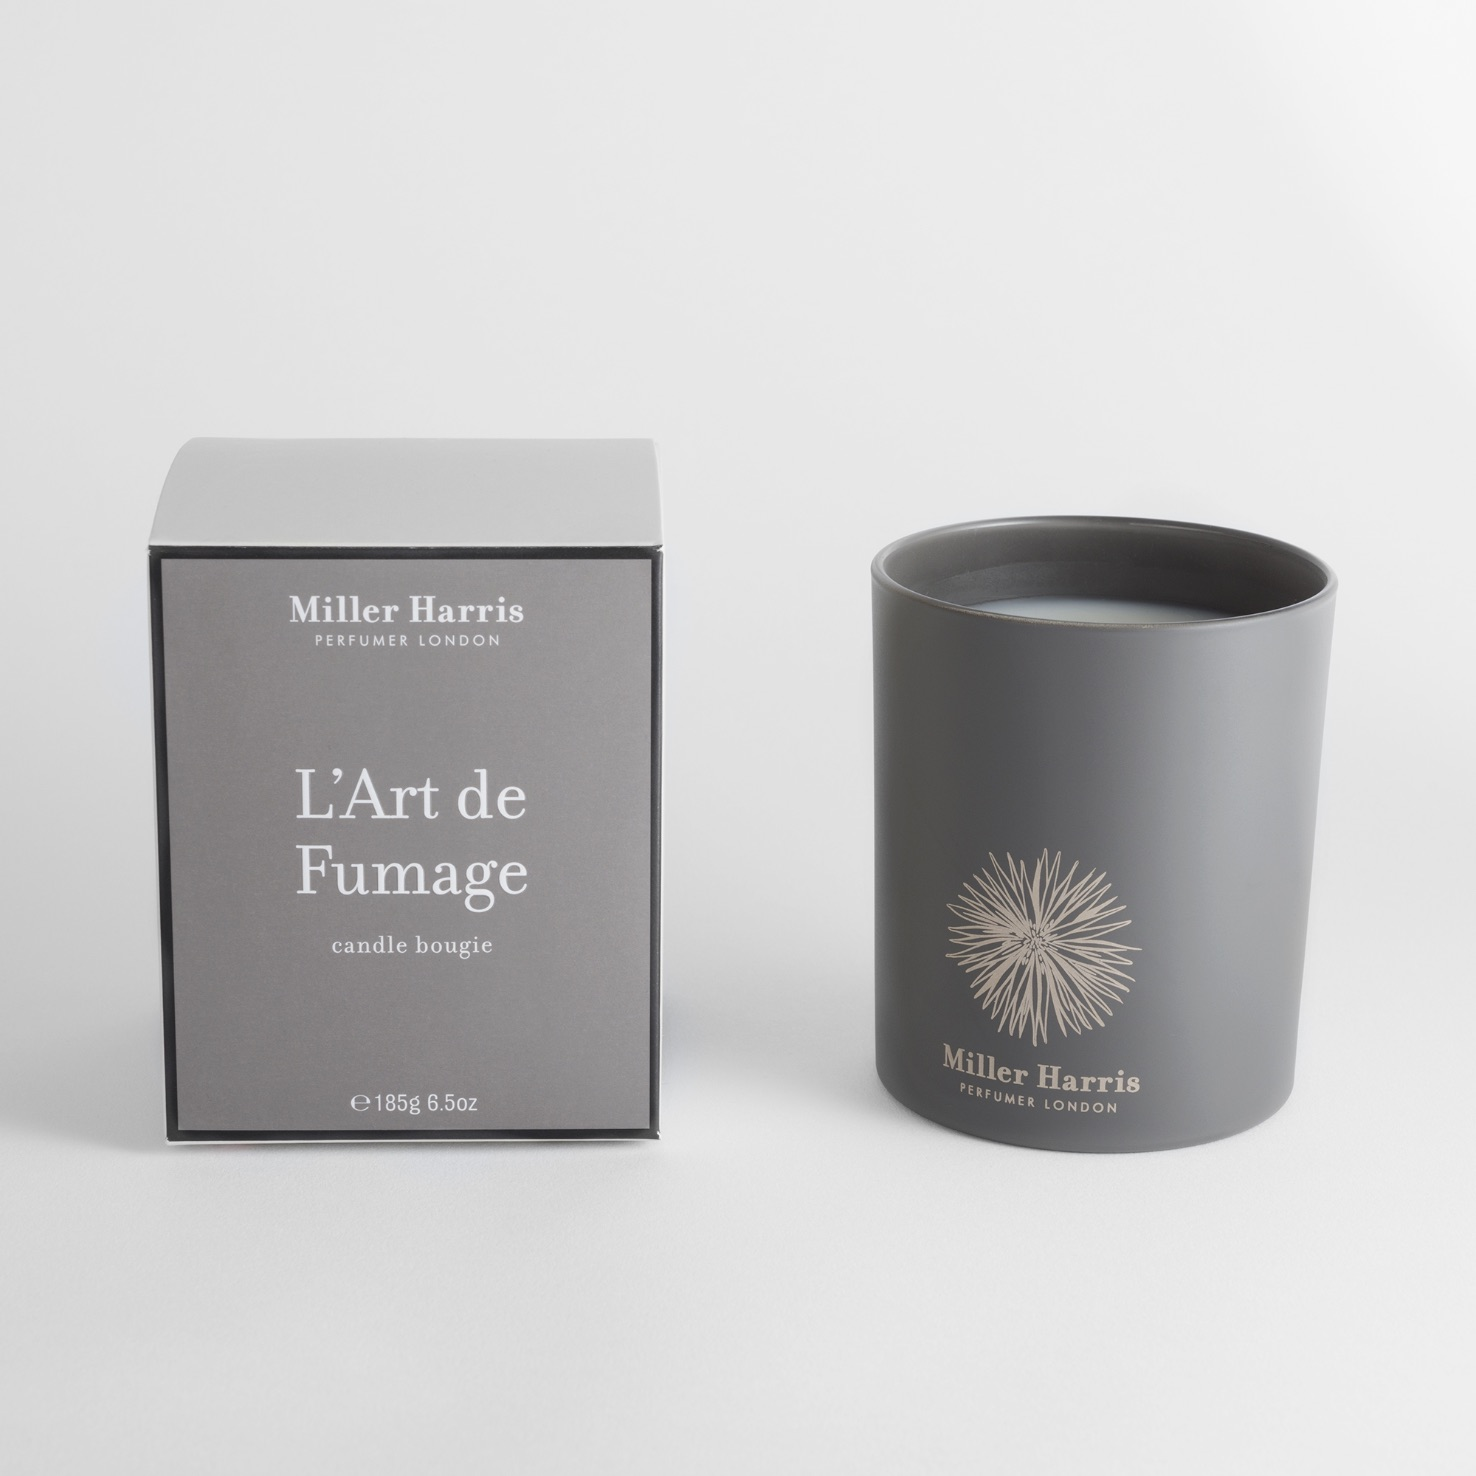 Miller Harris L'Art de Fumage Candle 185g